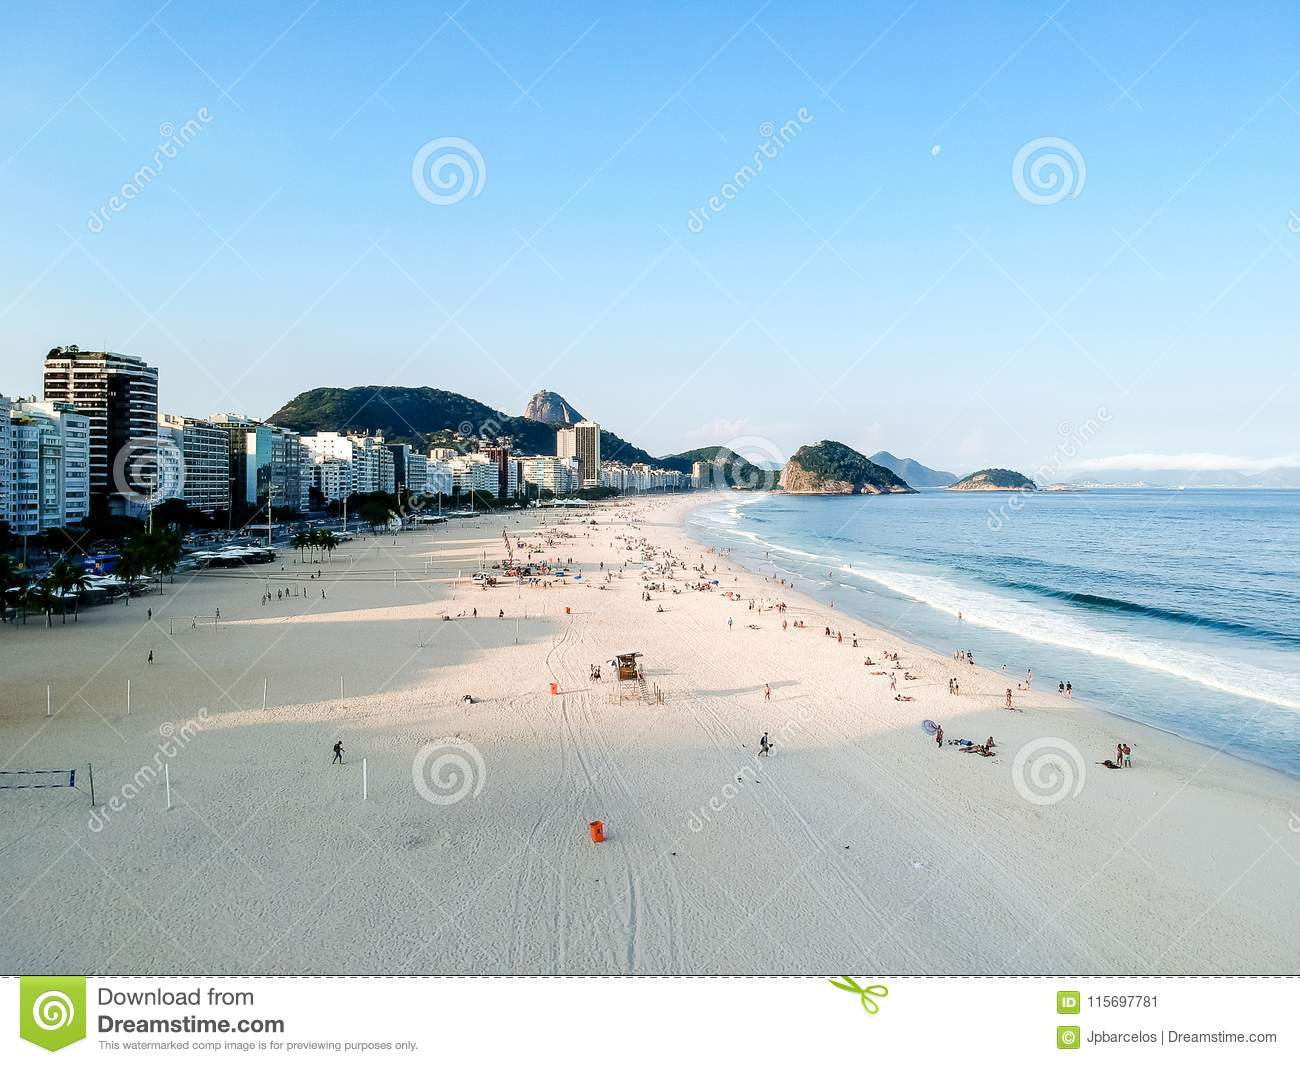 aerial drone view of Copacabana beachs during late afternoon,, some shadows can be seen on the sand. Rio de Janeiro, Brazil